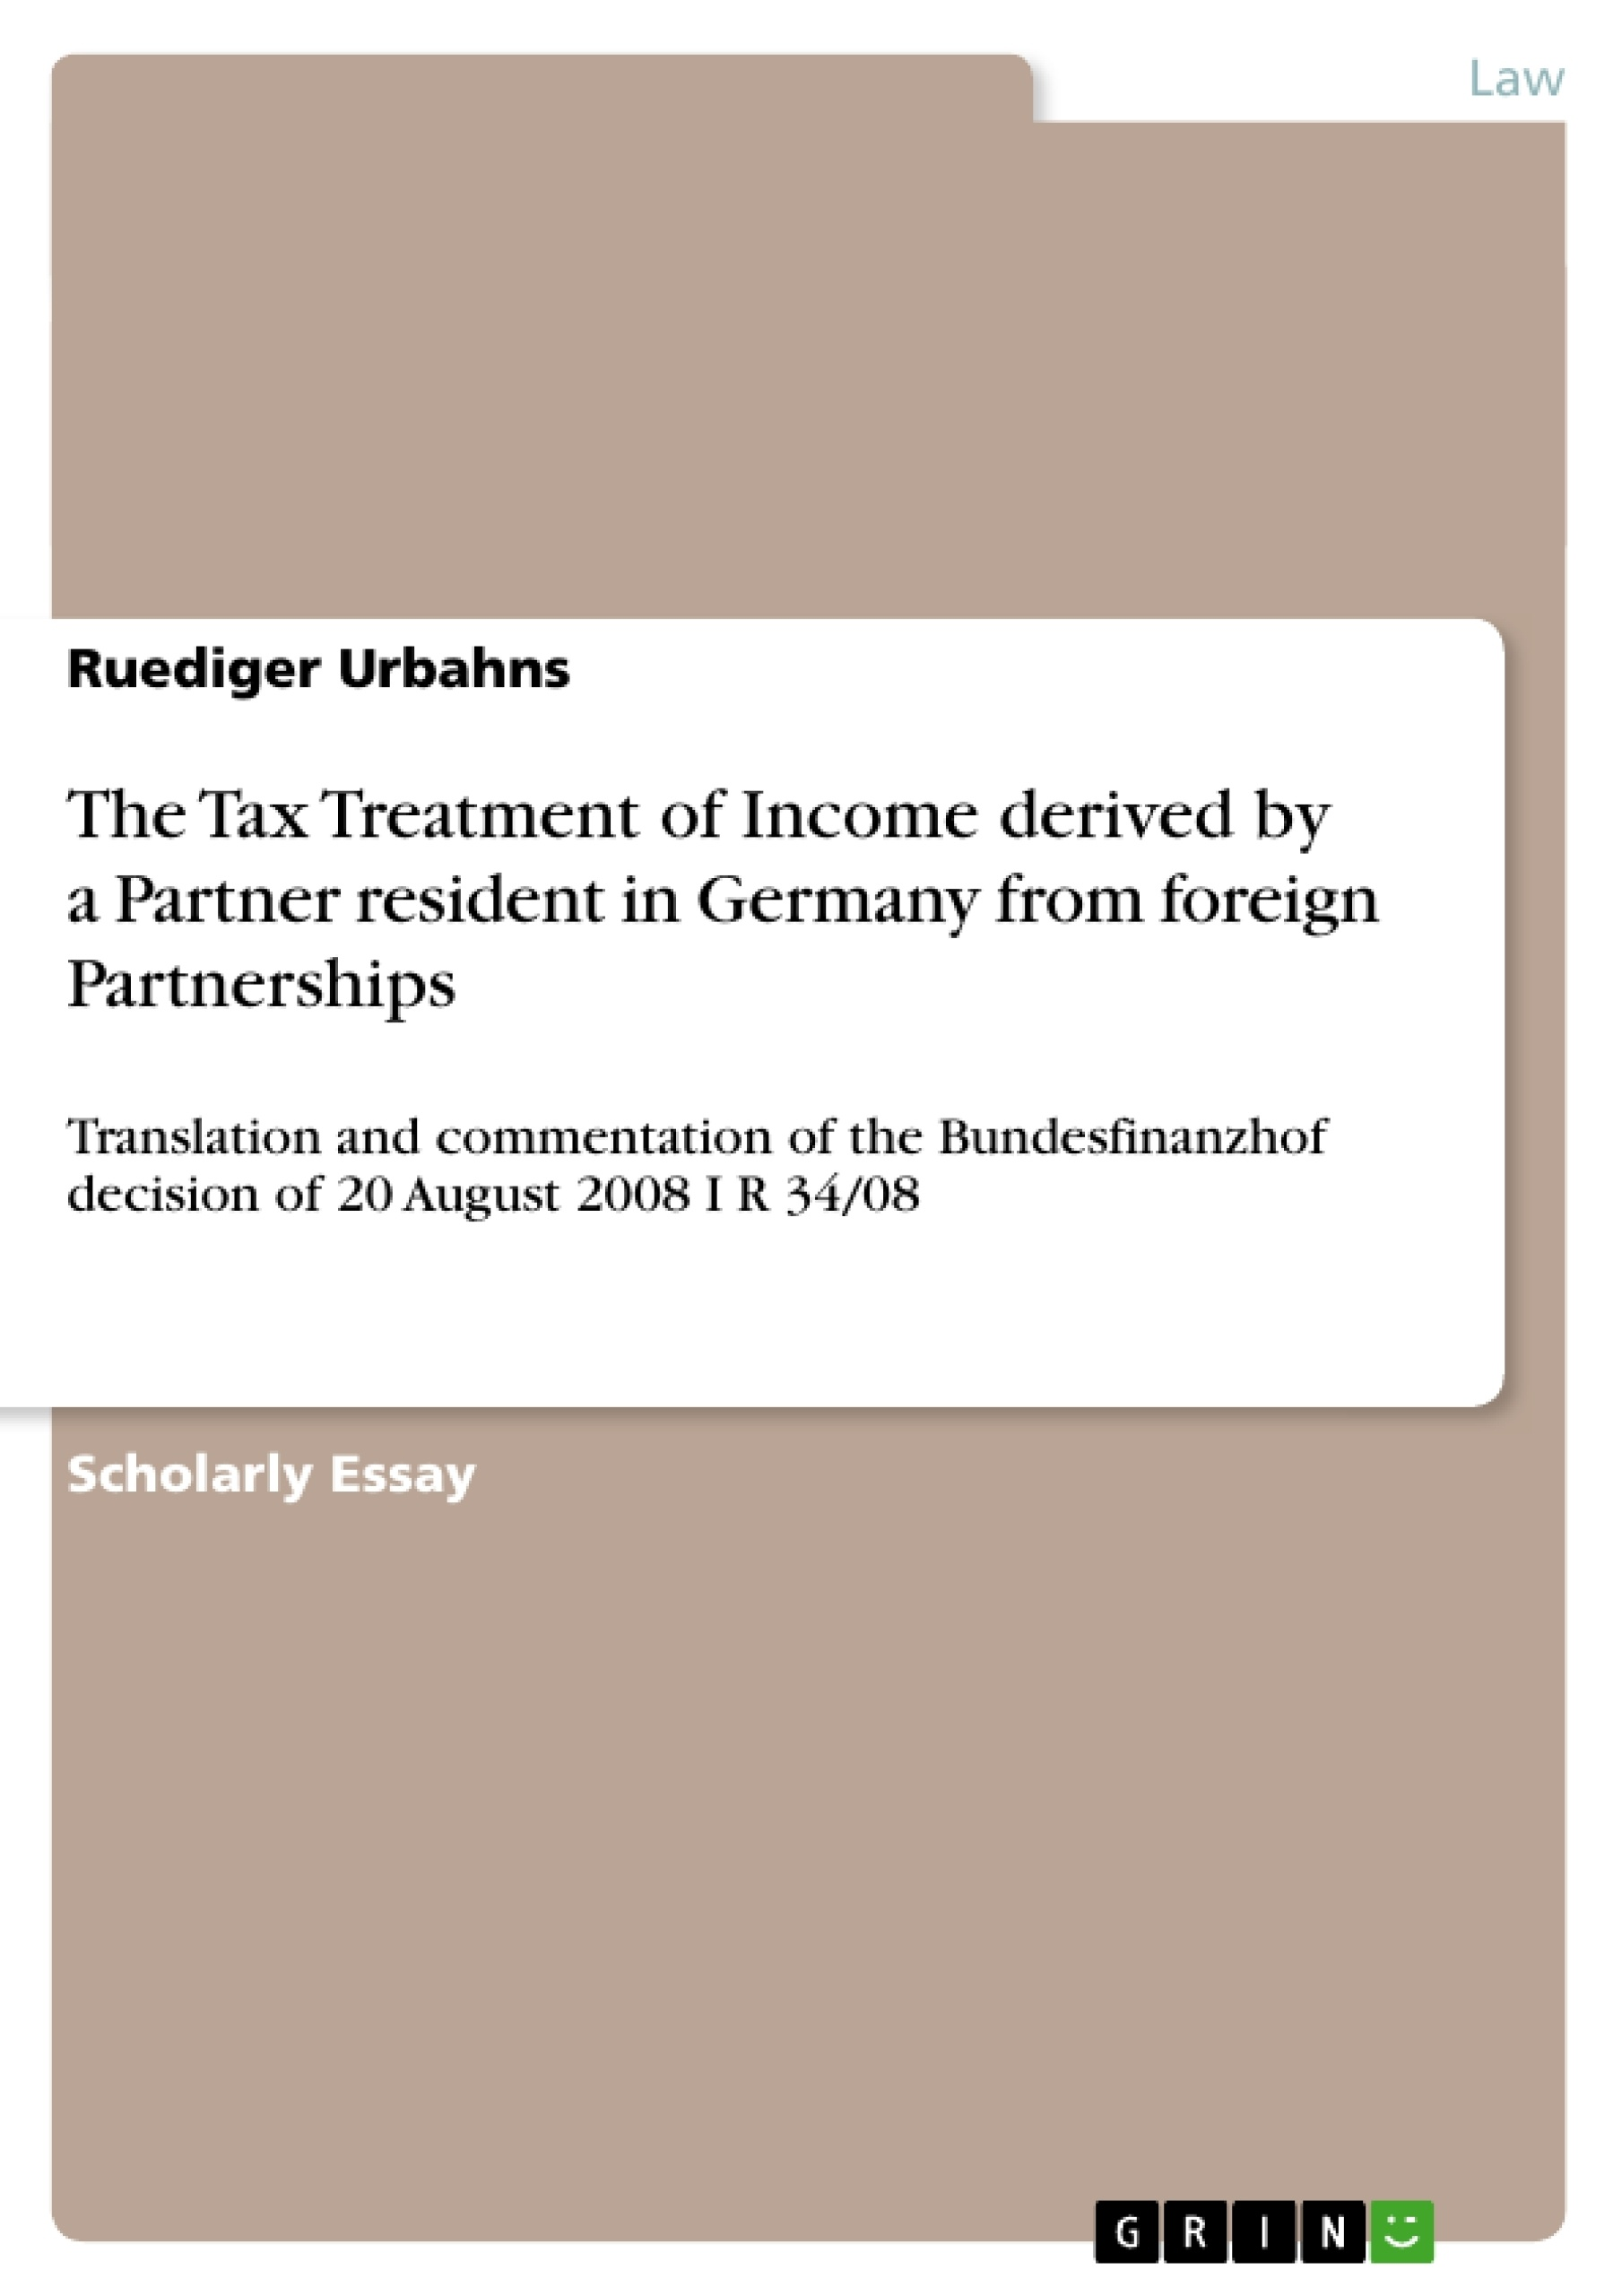 Title: The Tax Treatment of Income derived by a Partner resident in Germany from foreign Partnerships